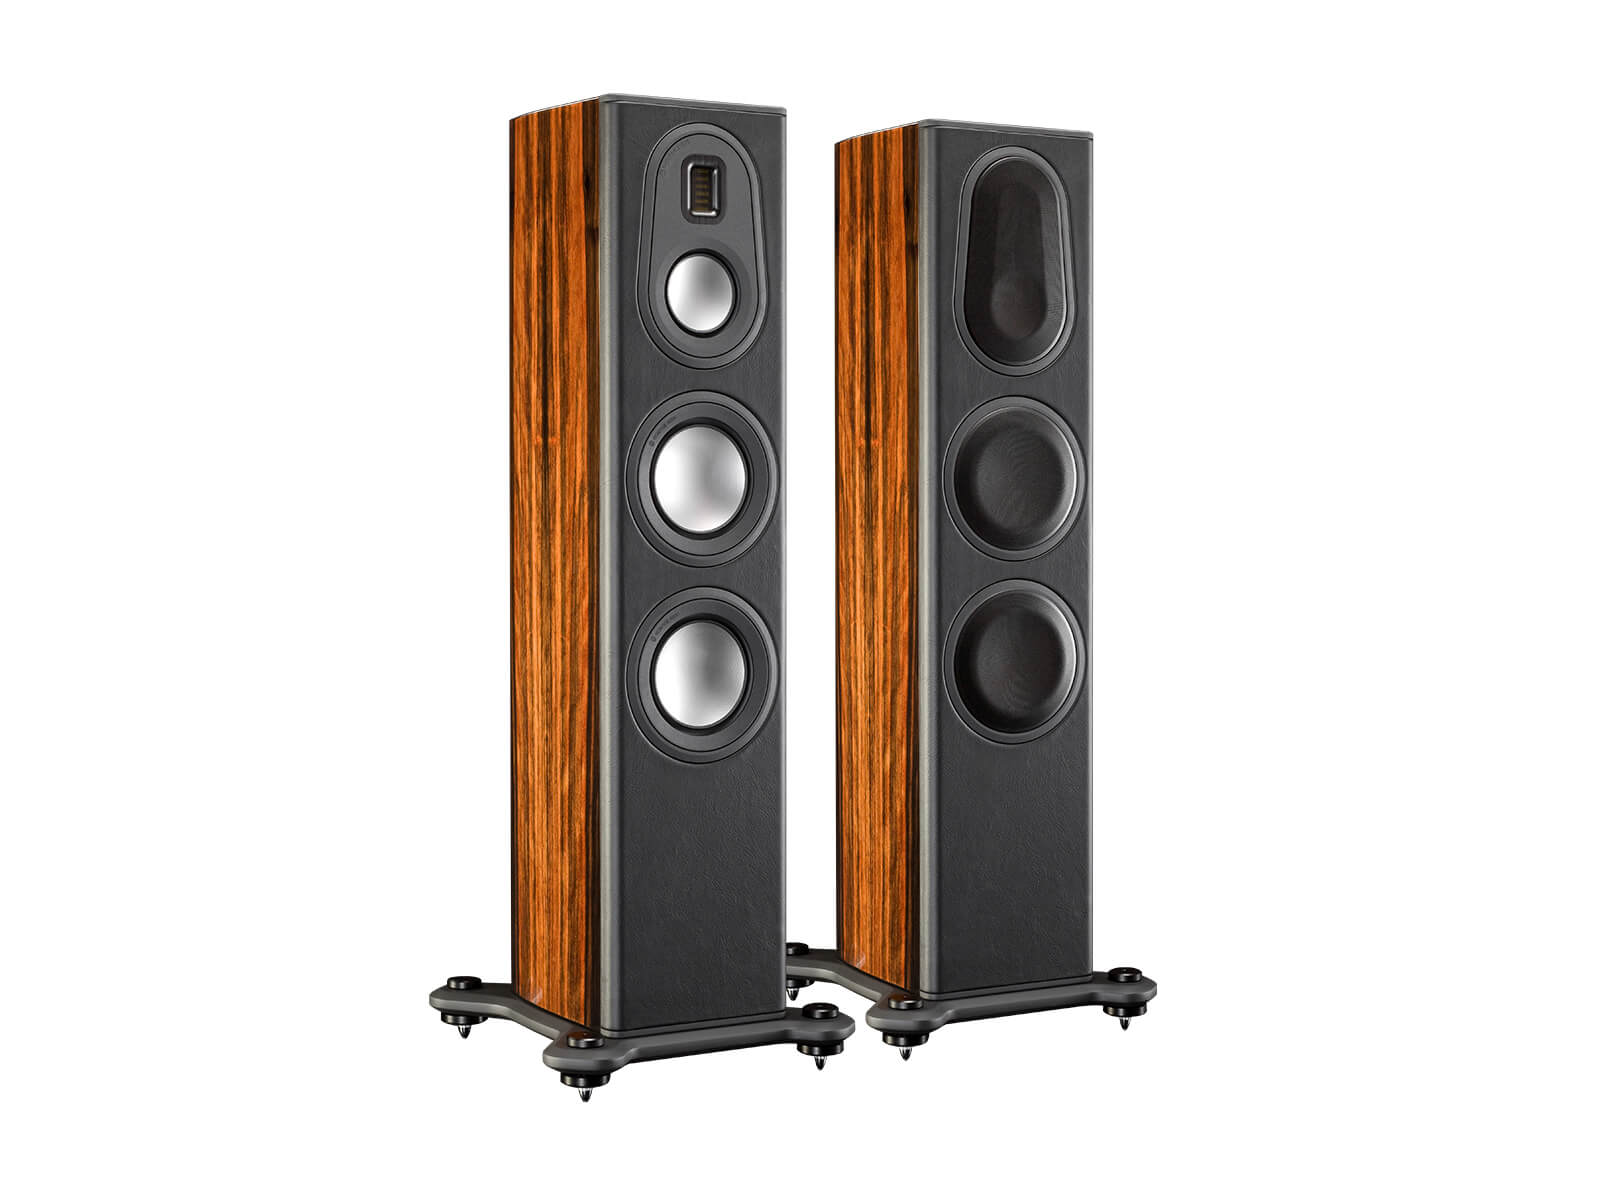 Platinum PL200 II, grille-less floorstanding speakers, with an ebony real wood veneer finish.